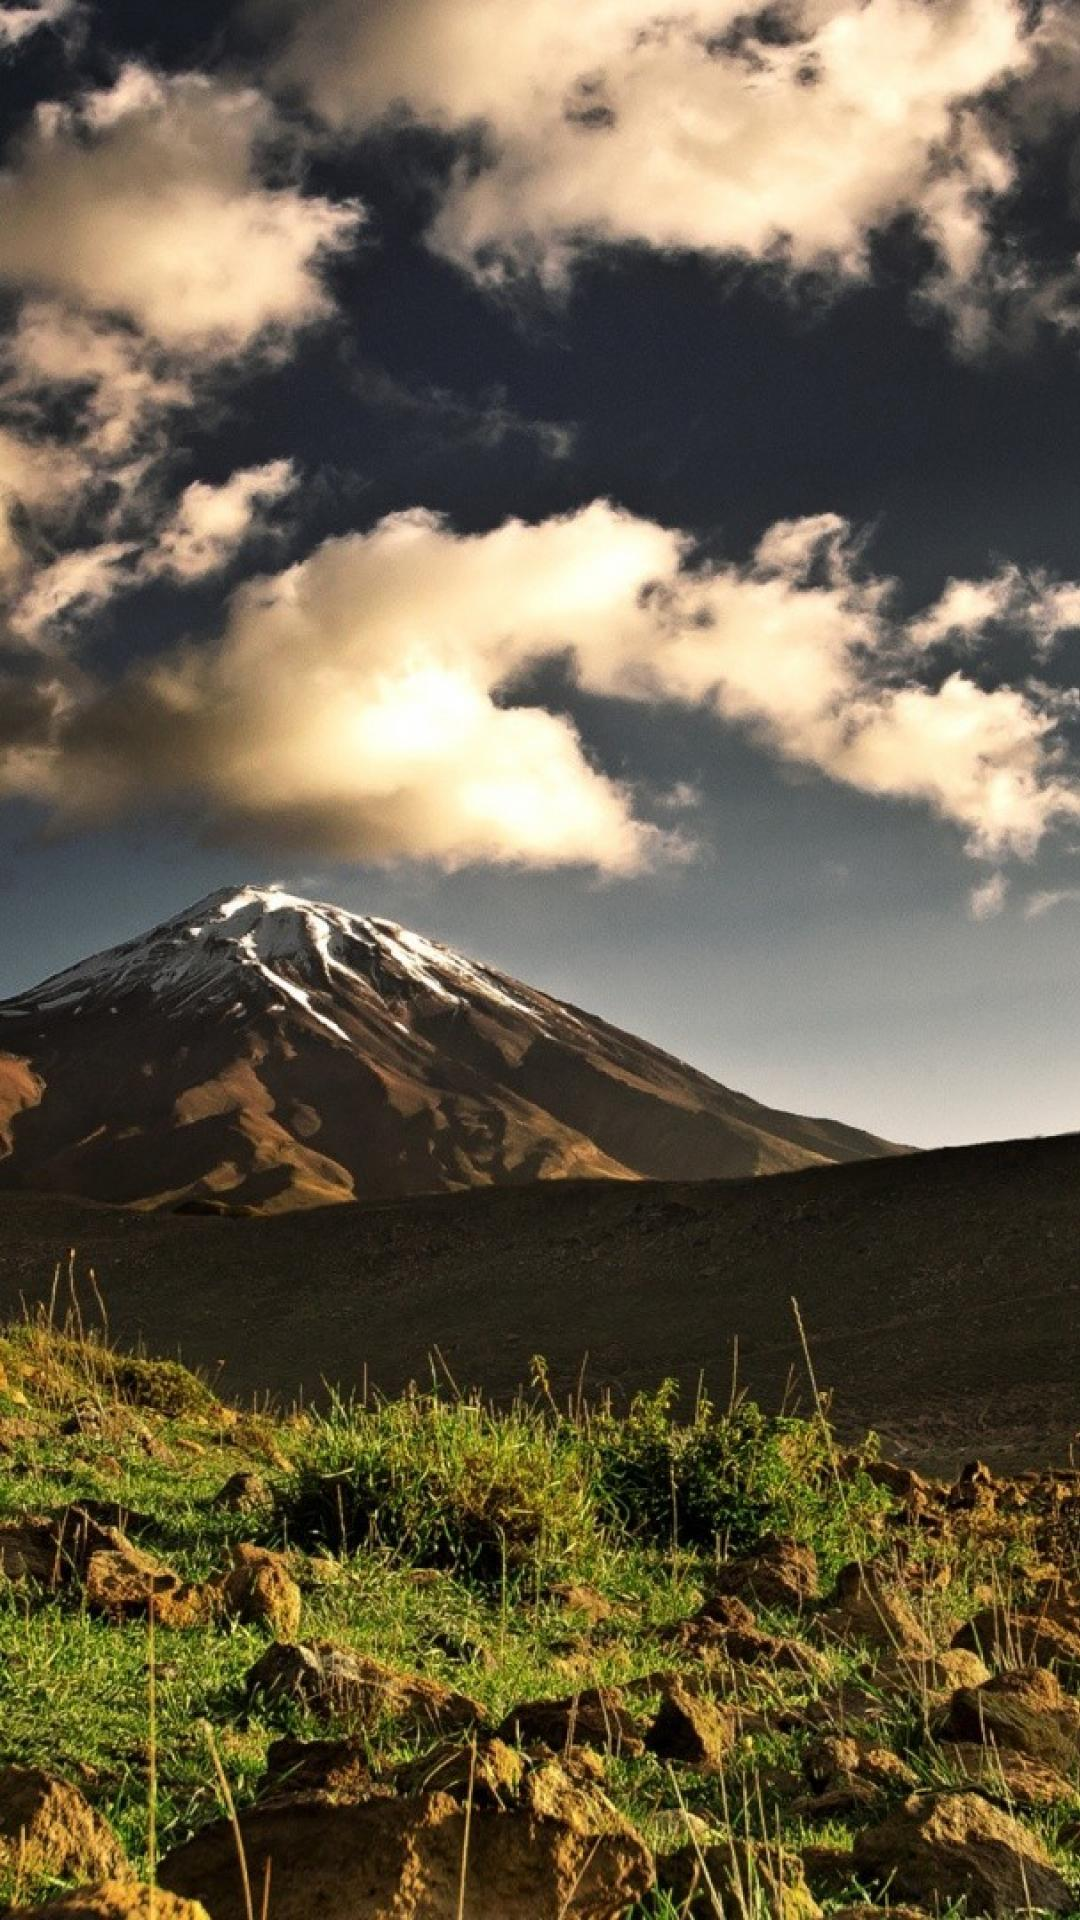 Mount kilimanjaro clouds landscapes mountains skylines wallpapers